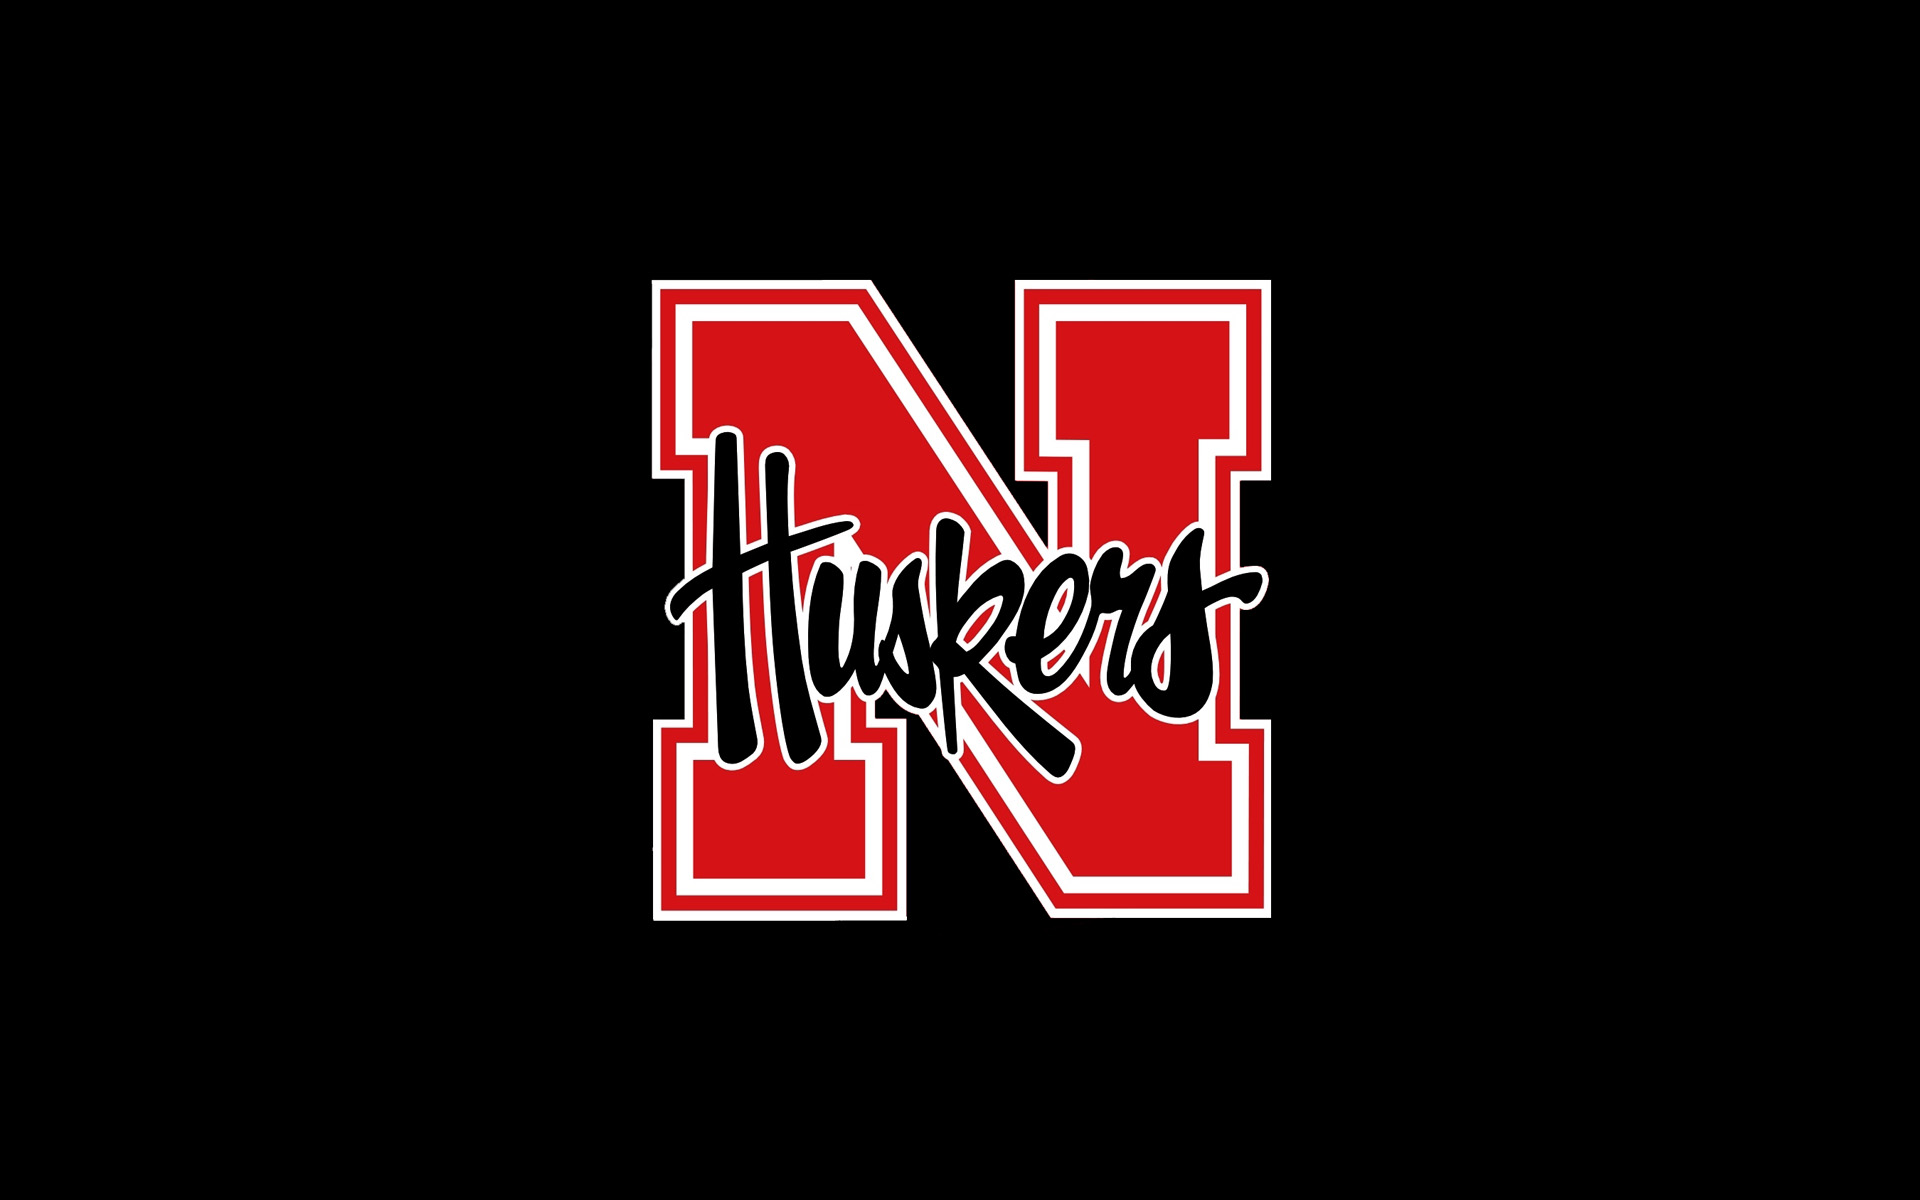 group of husker wallpaper background